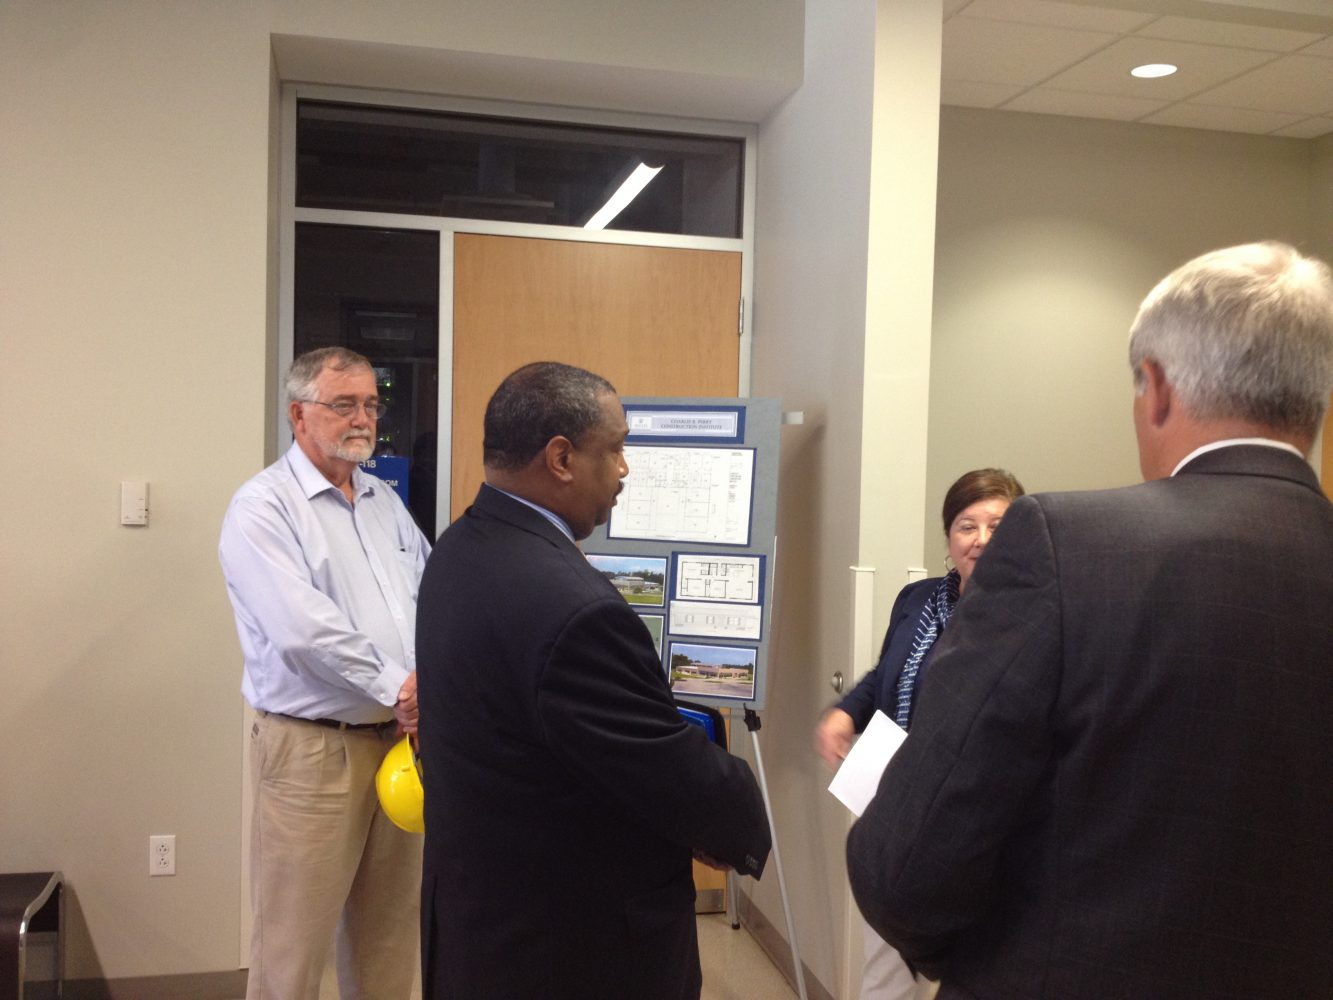 Chancellor for the FL Department of Education Rod Duckworth touring facilities at SFC on Tuesday.